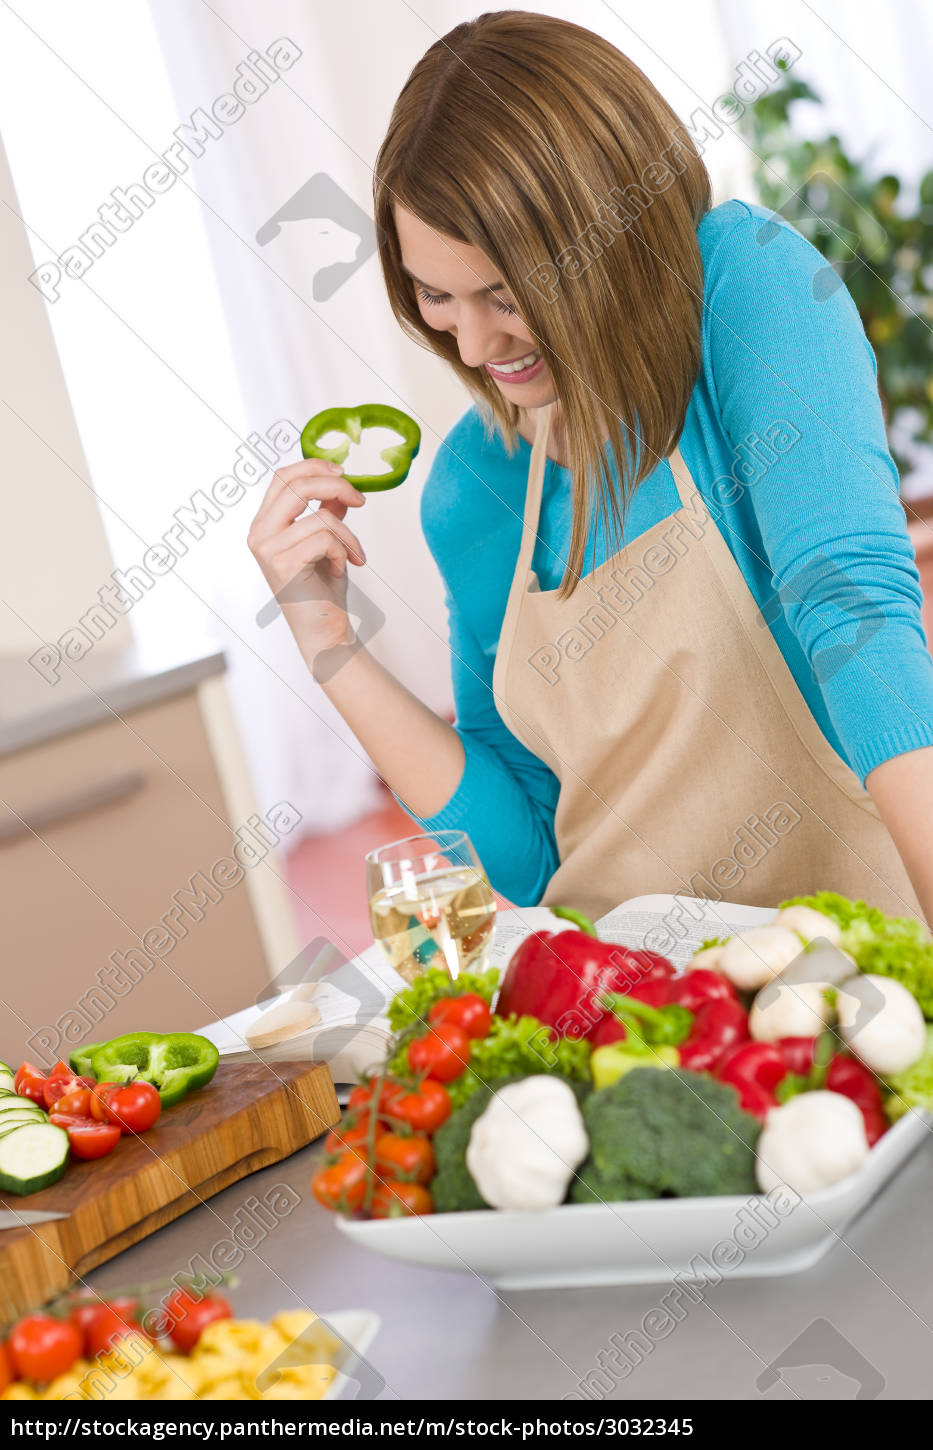 woman, food, aliment, kitchen, cuisine, vegetable - 3032345